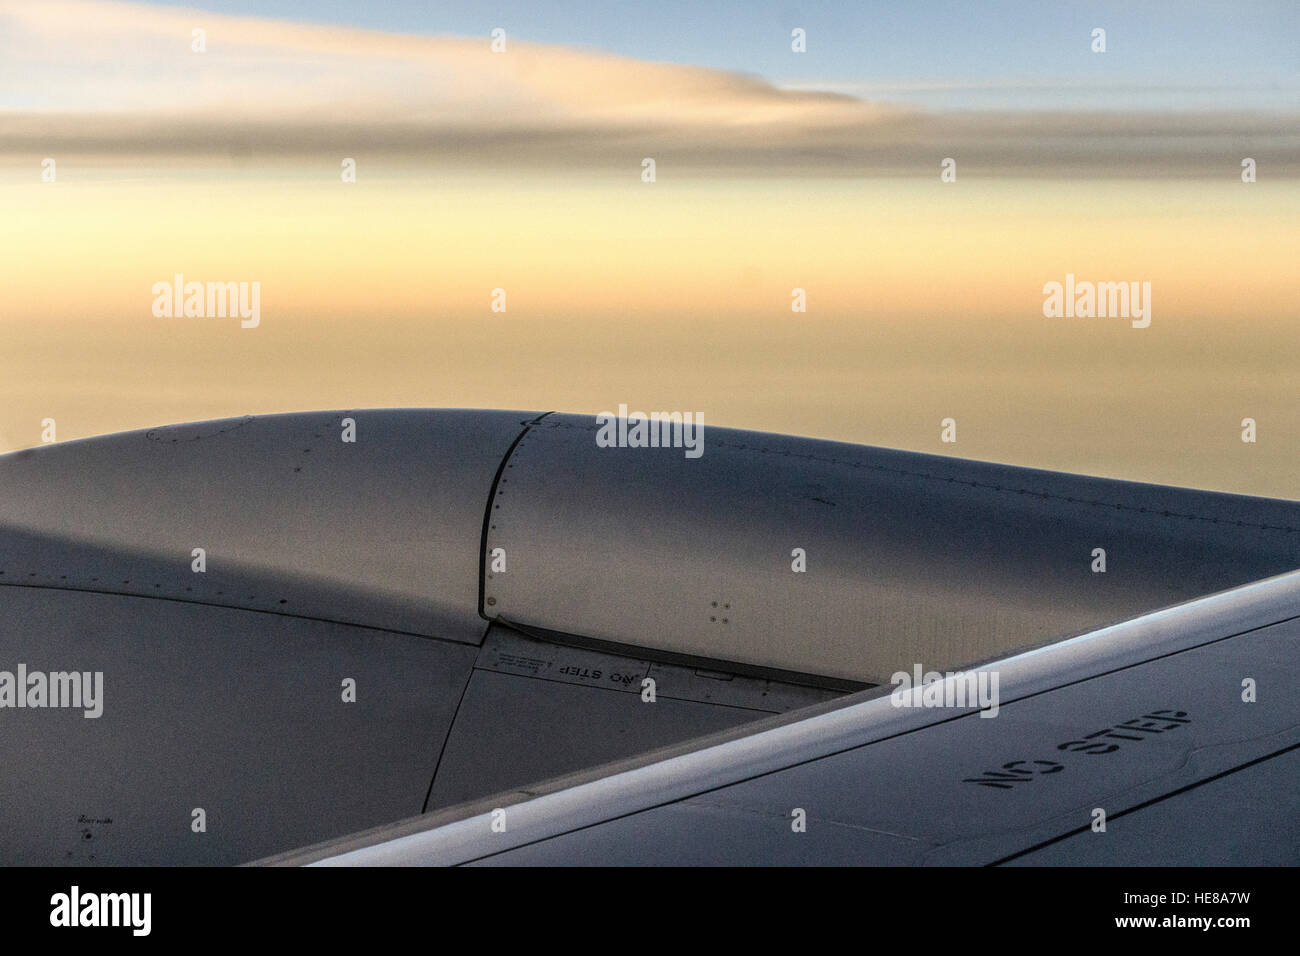 abstraction of engine & leading edge of wing Boeing Dreamliner in flight above Gulf of Mexico seen against beautiful - Stock Image